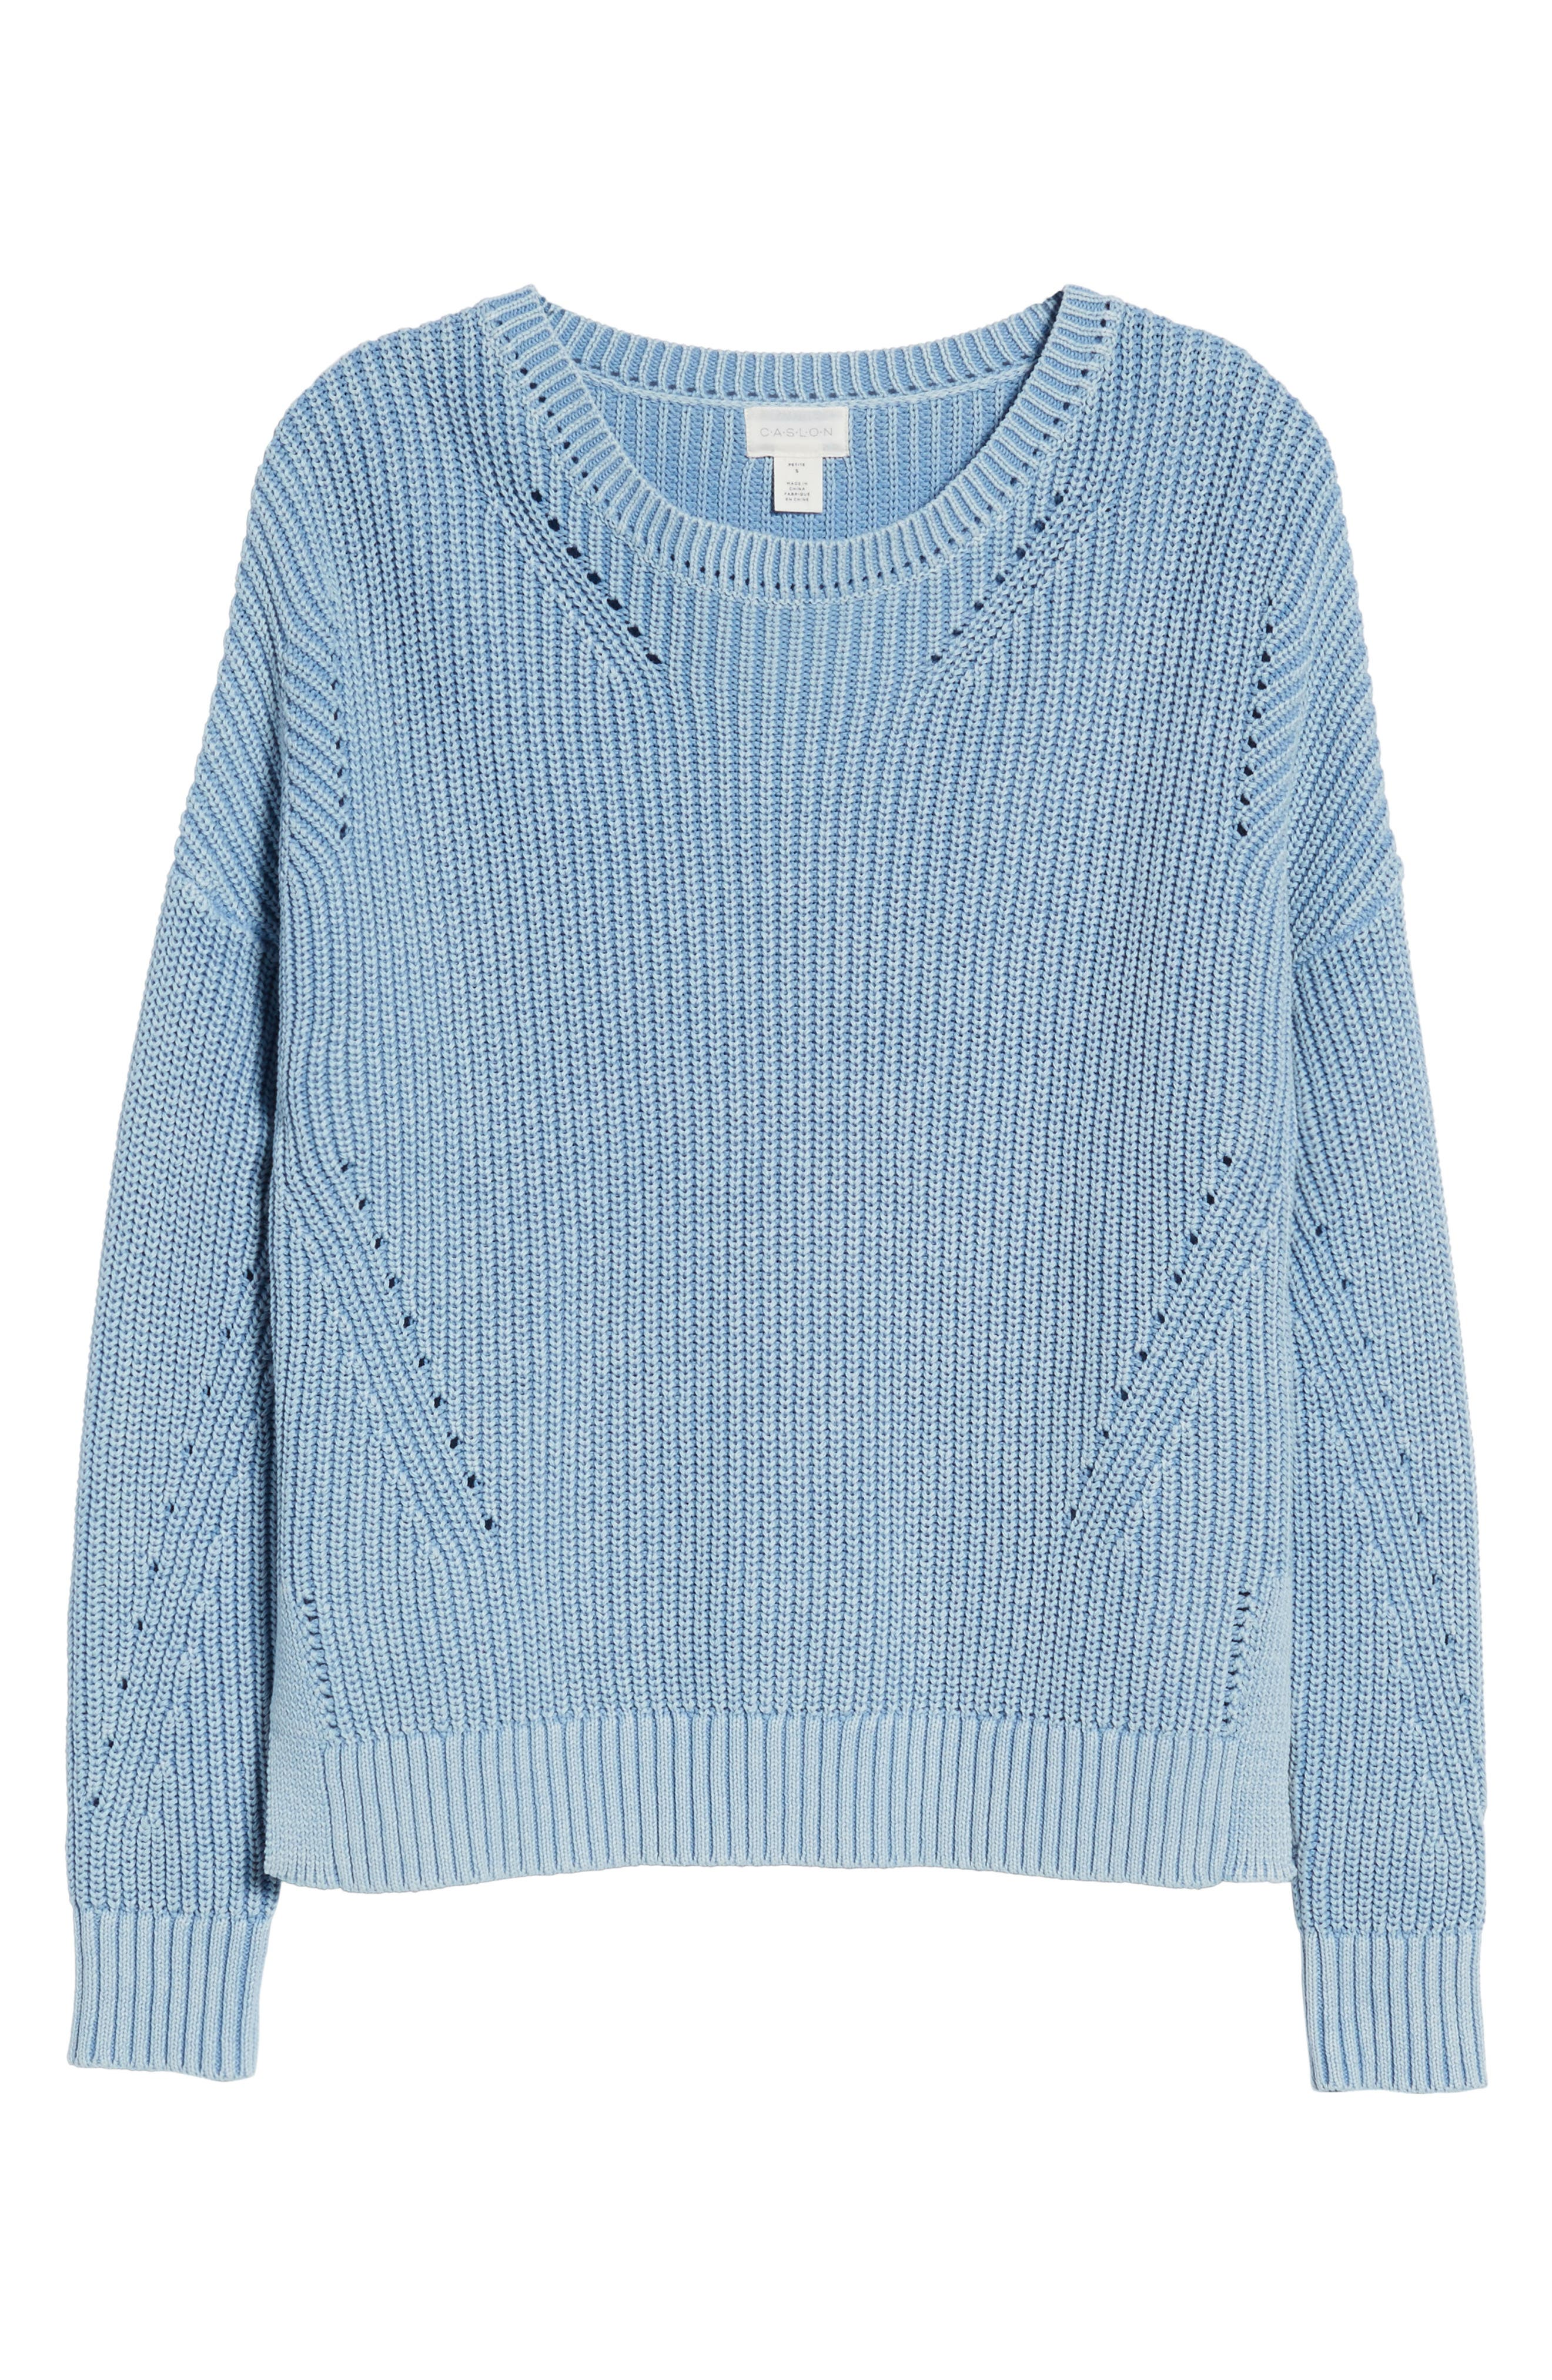 Shaker Stitch Cotton Sweater,                             Alternate thumbnail 11, color,